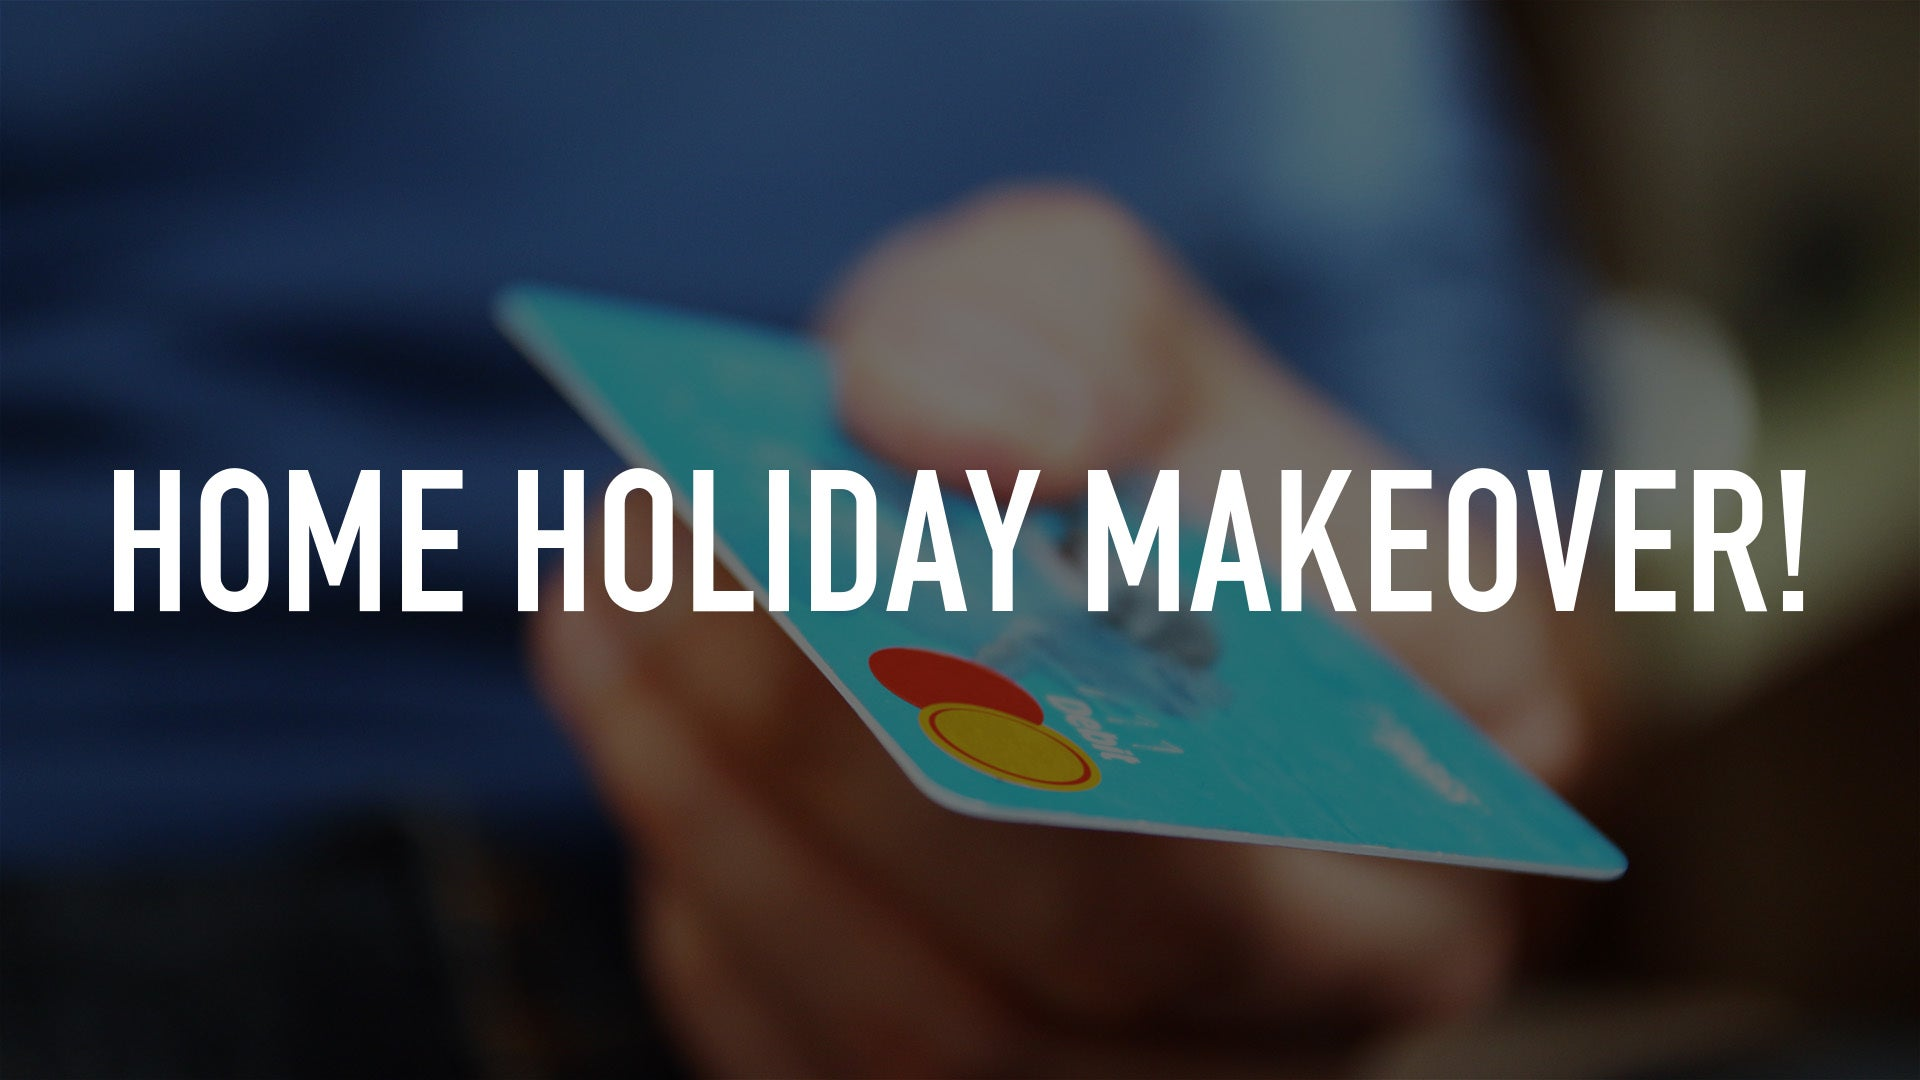 Home Holiday Makeover!